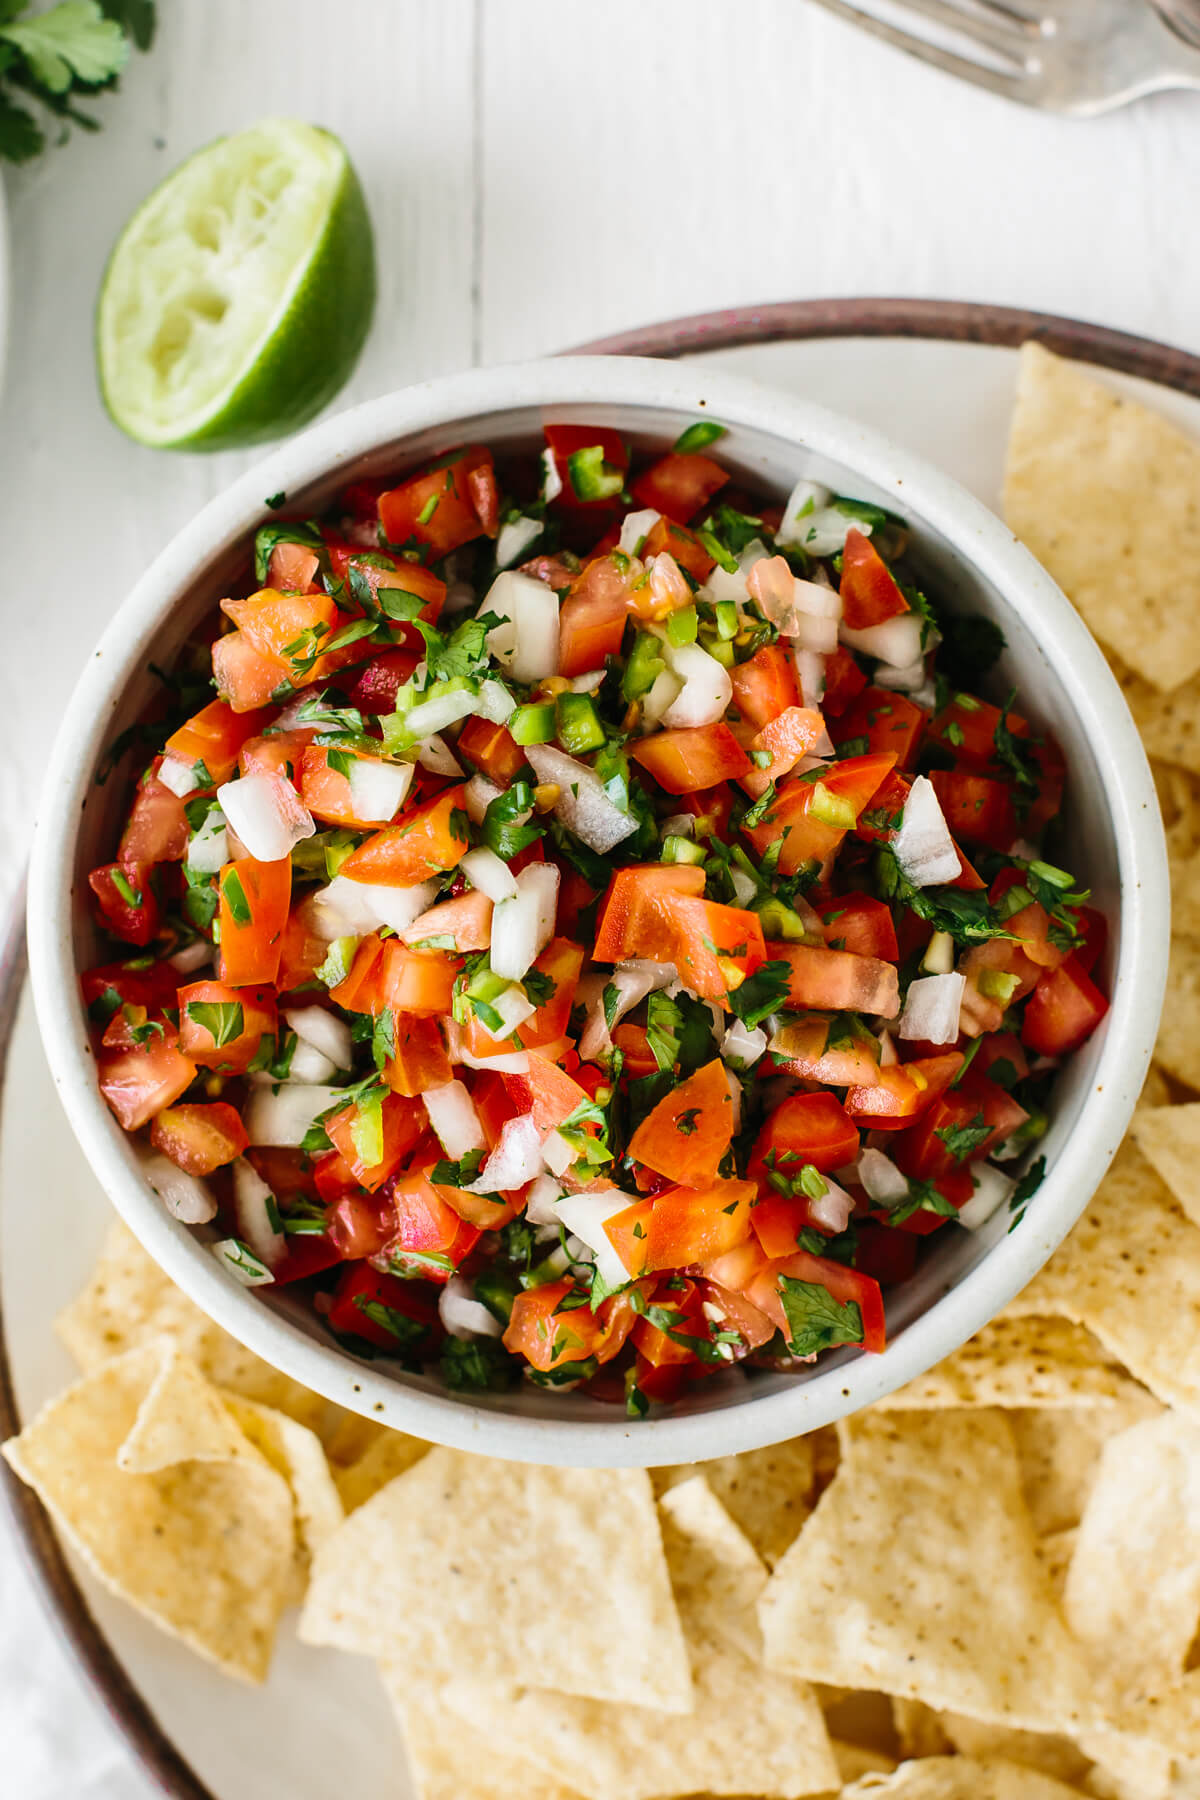 Pico de gallo in a bowl next to chips.